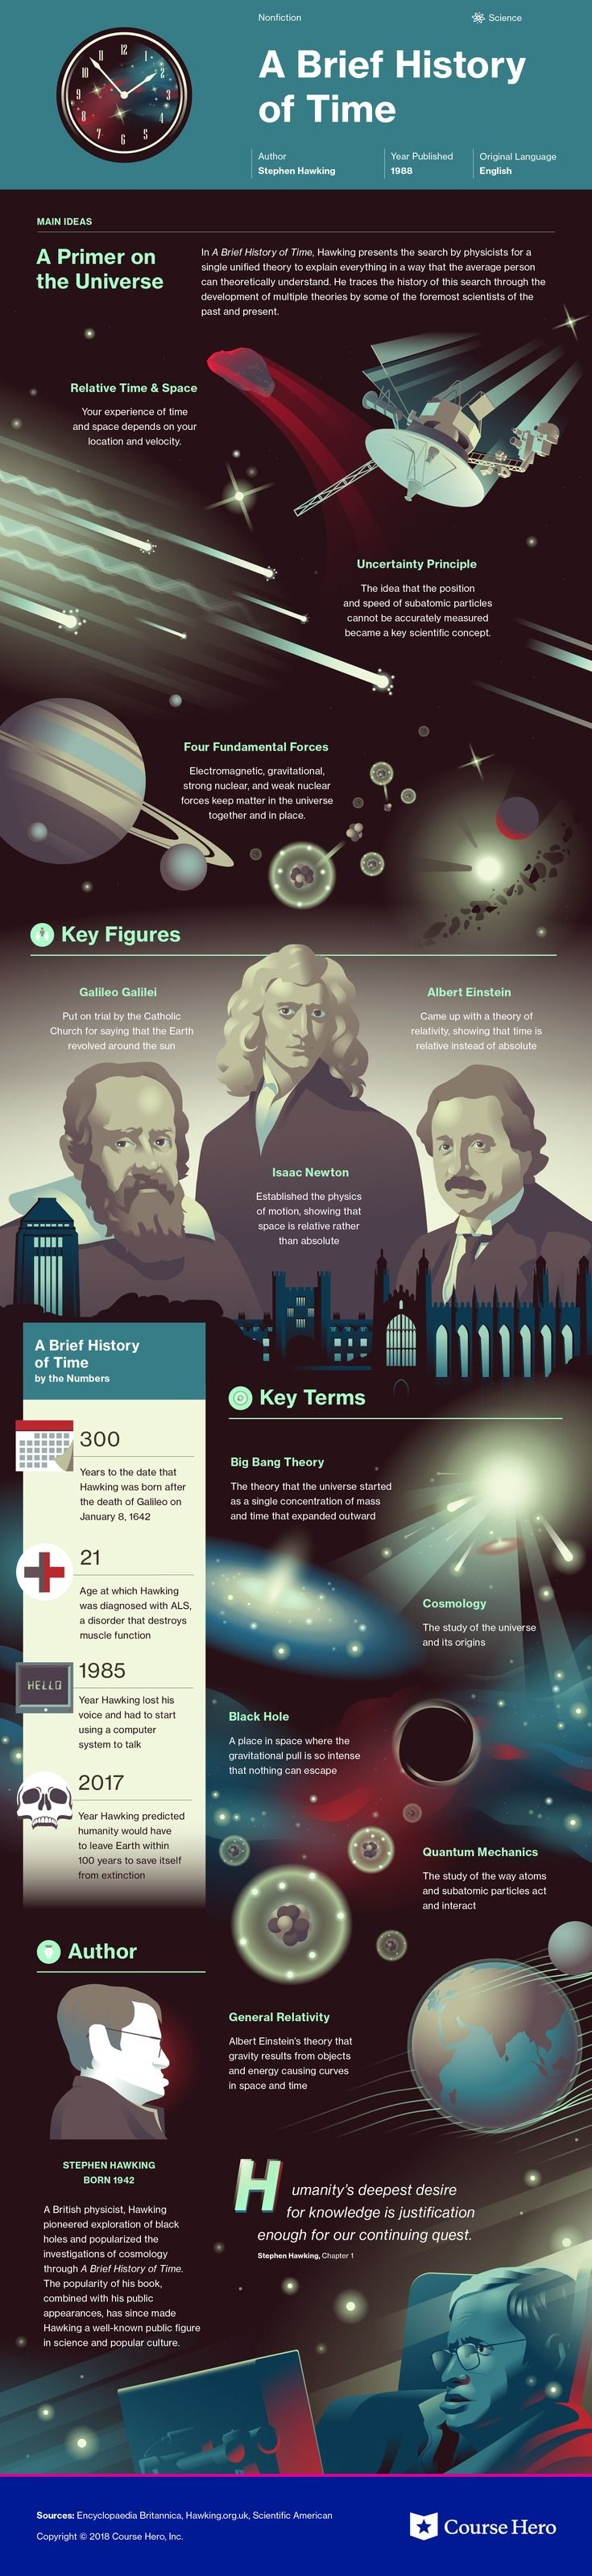 This @CourseHero infographic on A Brief History of Time is both visually stunning and informative!